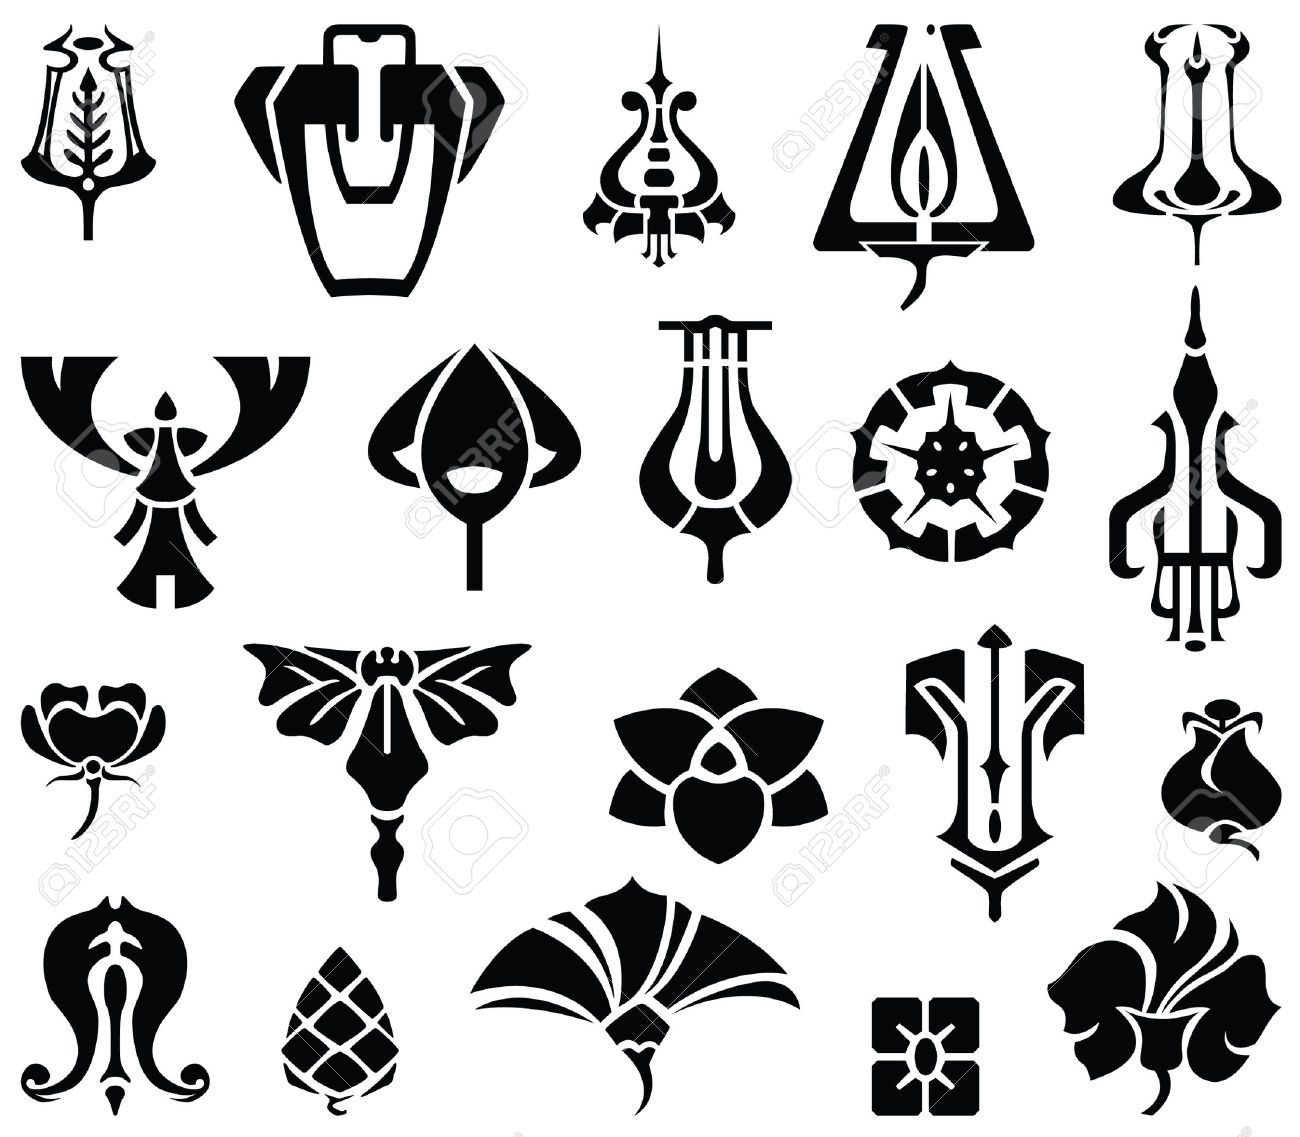 Art Deco Line Design : Art deco line designs google search i found these and